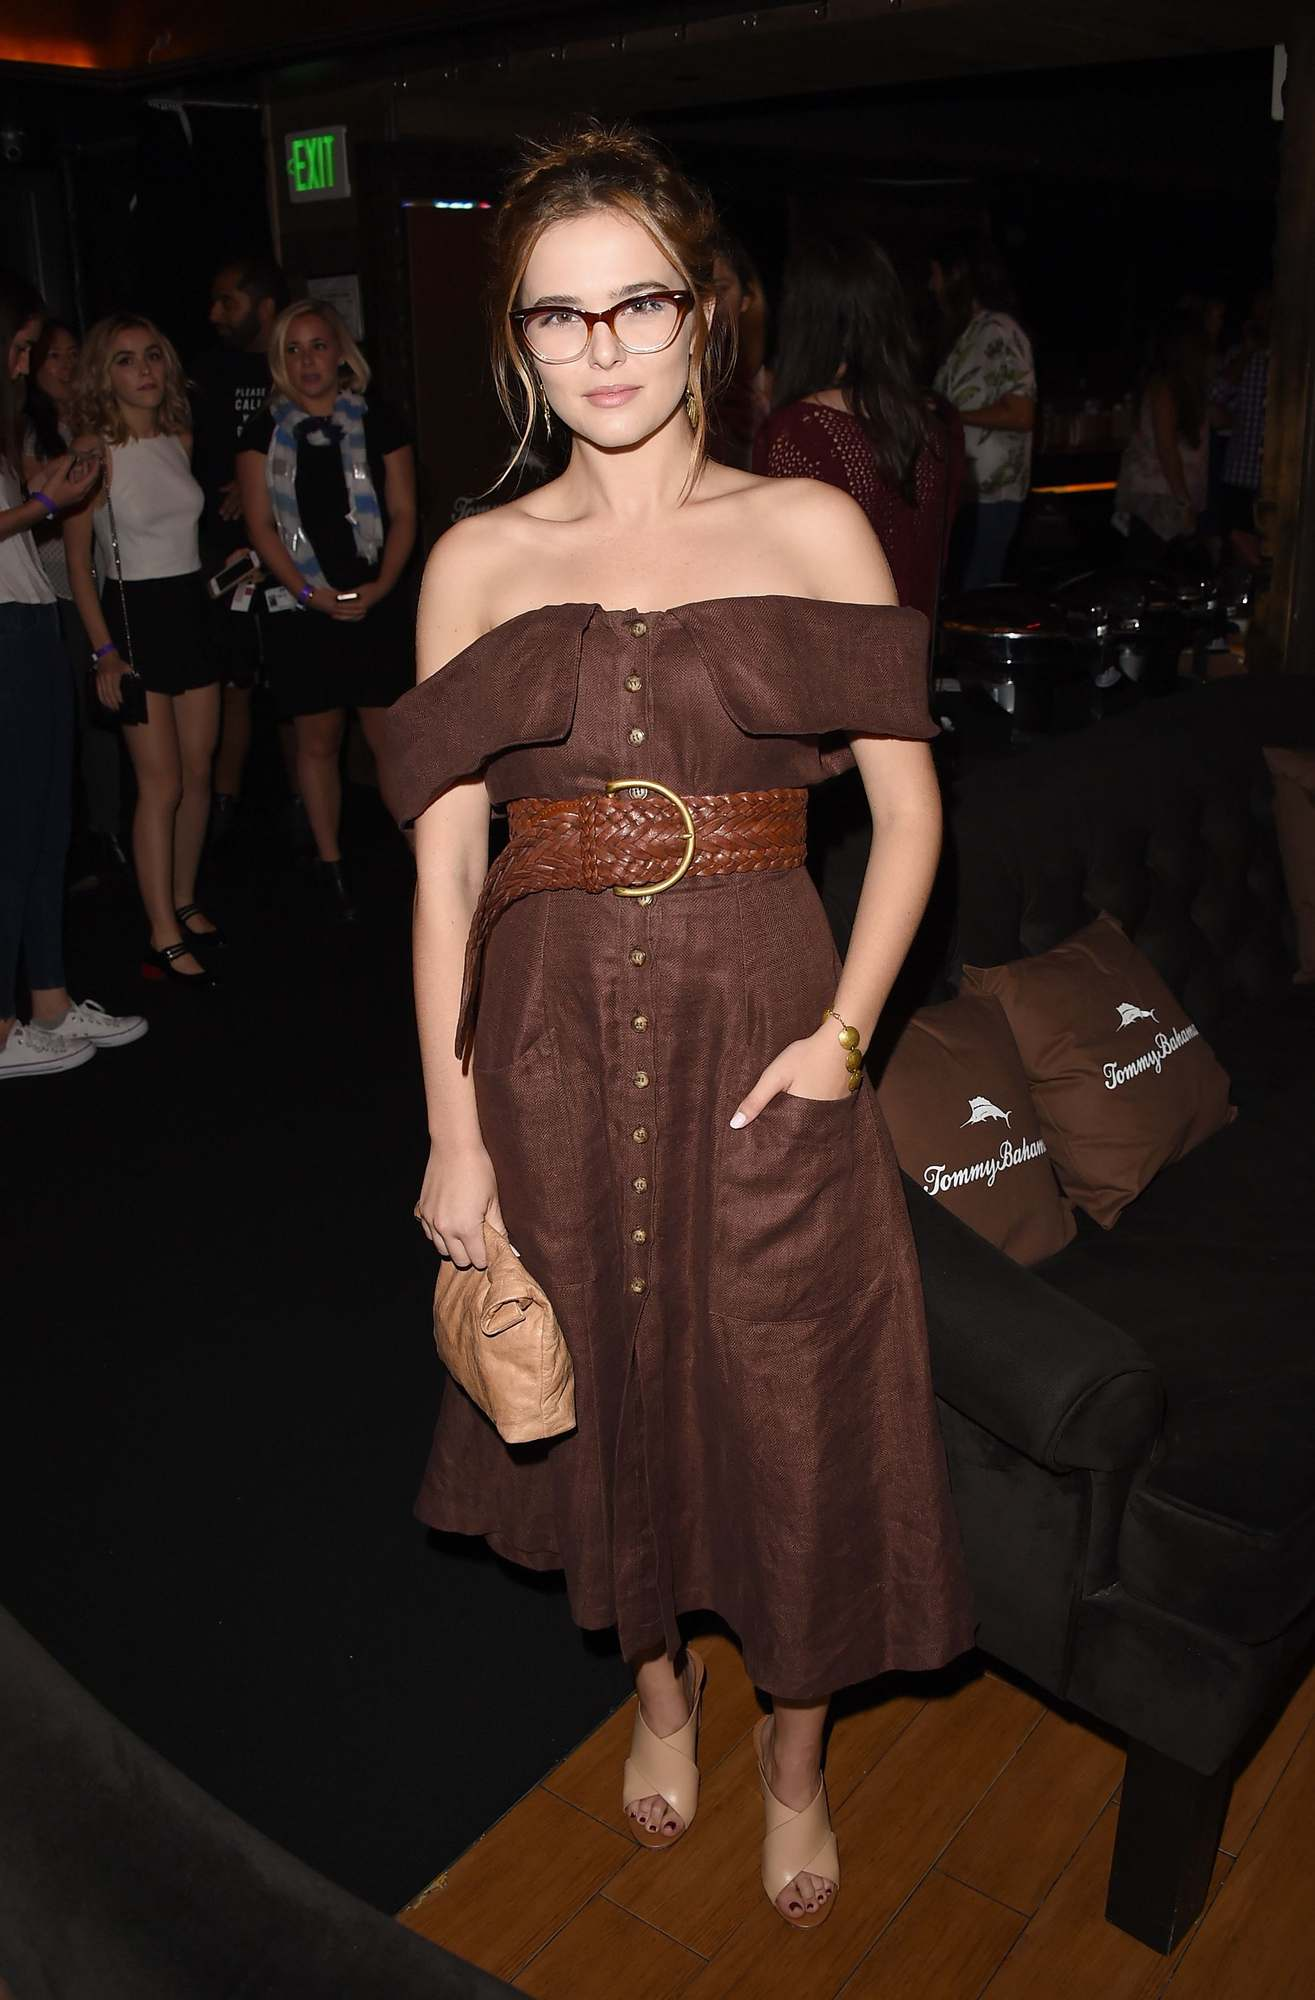 Zoey Deutch Parties at Taylor Swift Concert-3